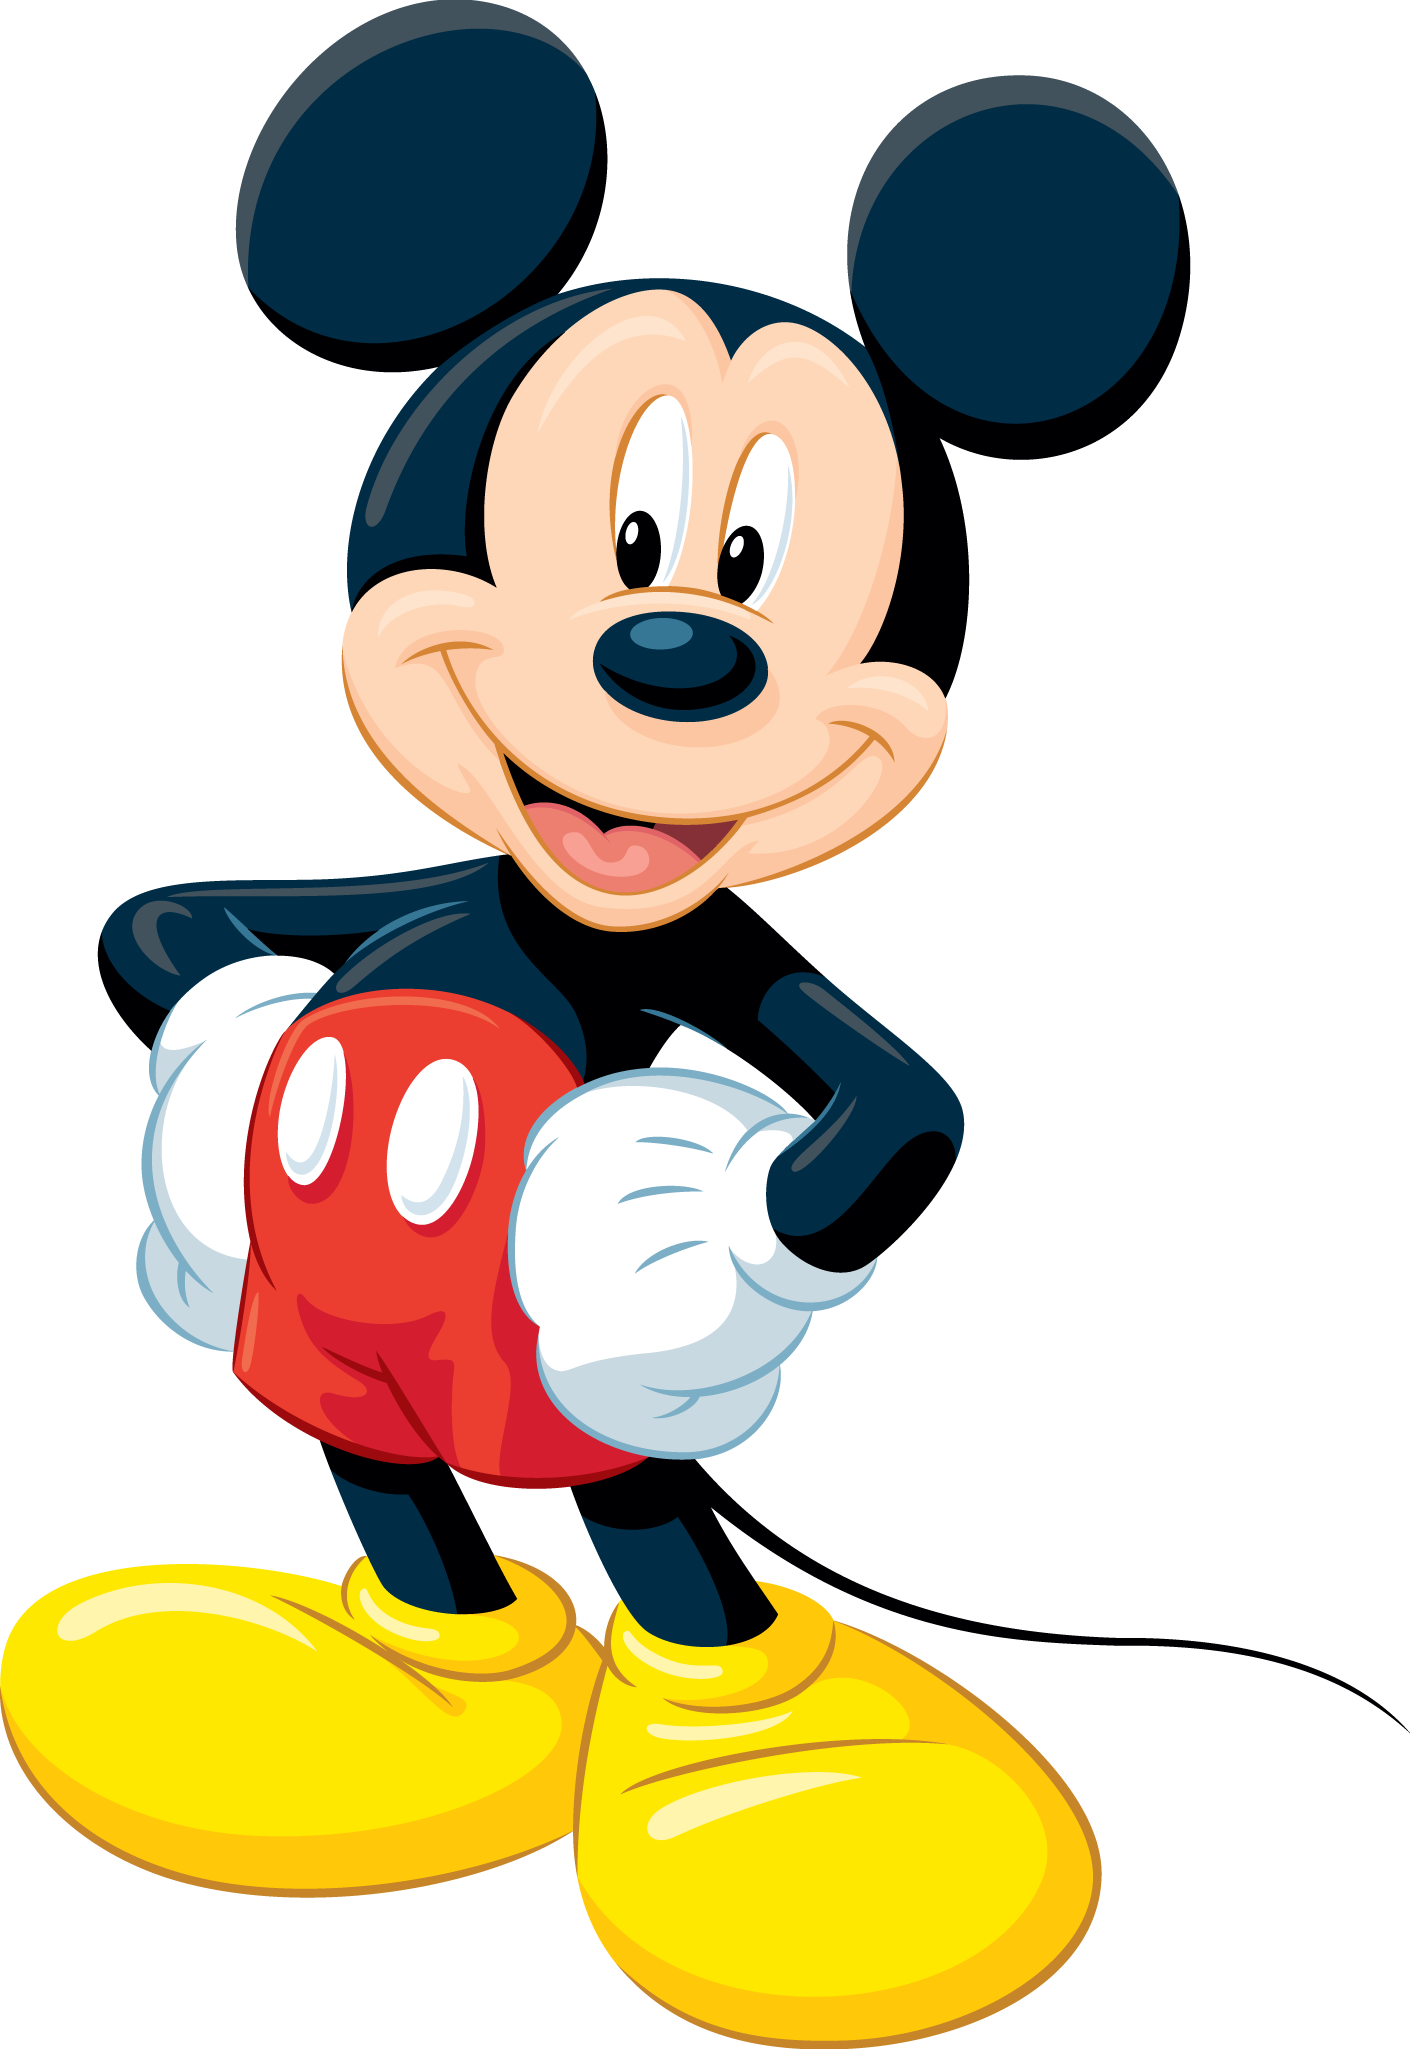 Sammies nd birthday pinterest. Mickey mouse png hd jpg freeuse download